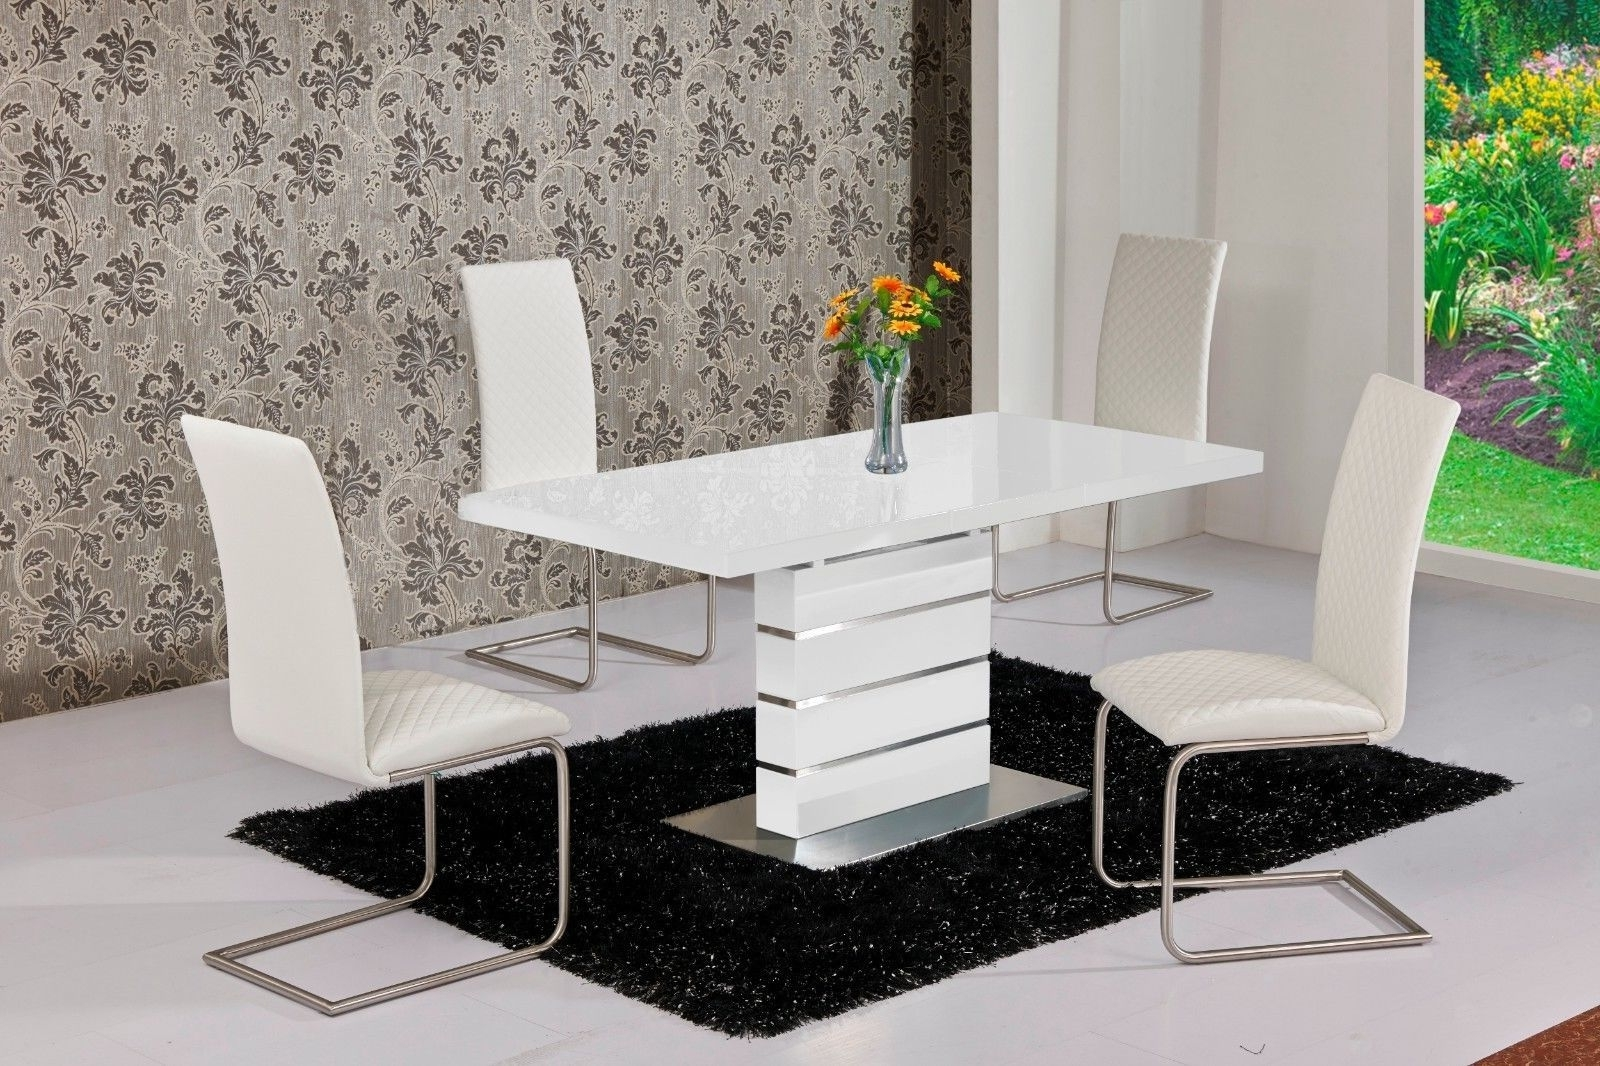 Fashionable White High Gloss Dining Tables With Regard To Mace High Gloss Extending 120 160 Dining Table & Chair Set – White (View 3 of 25)